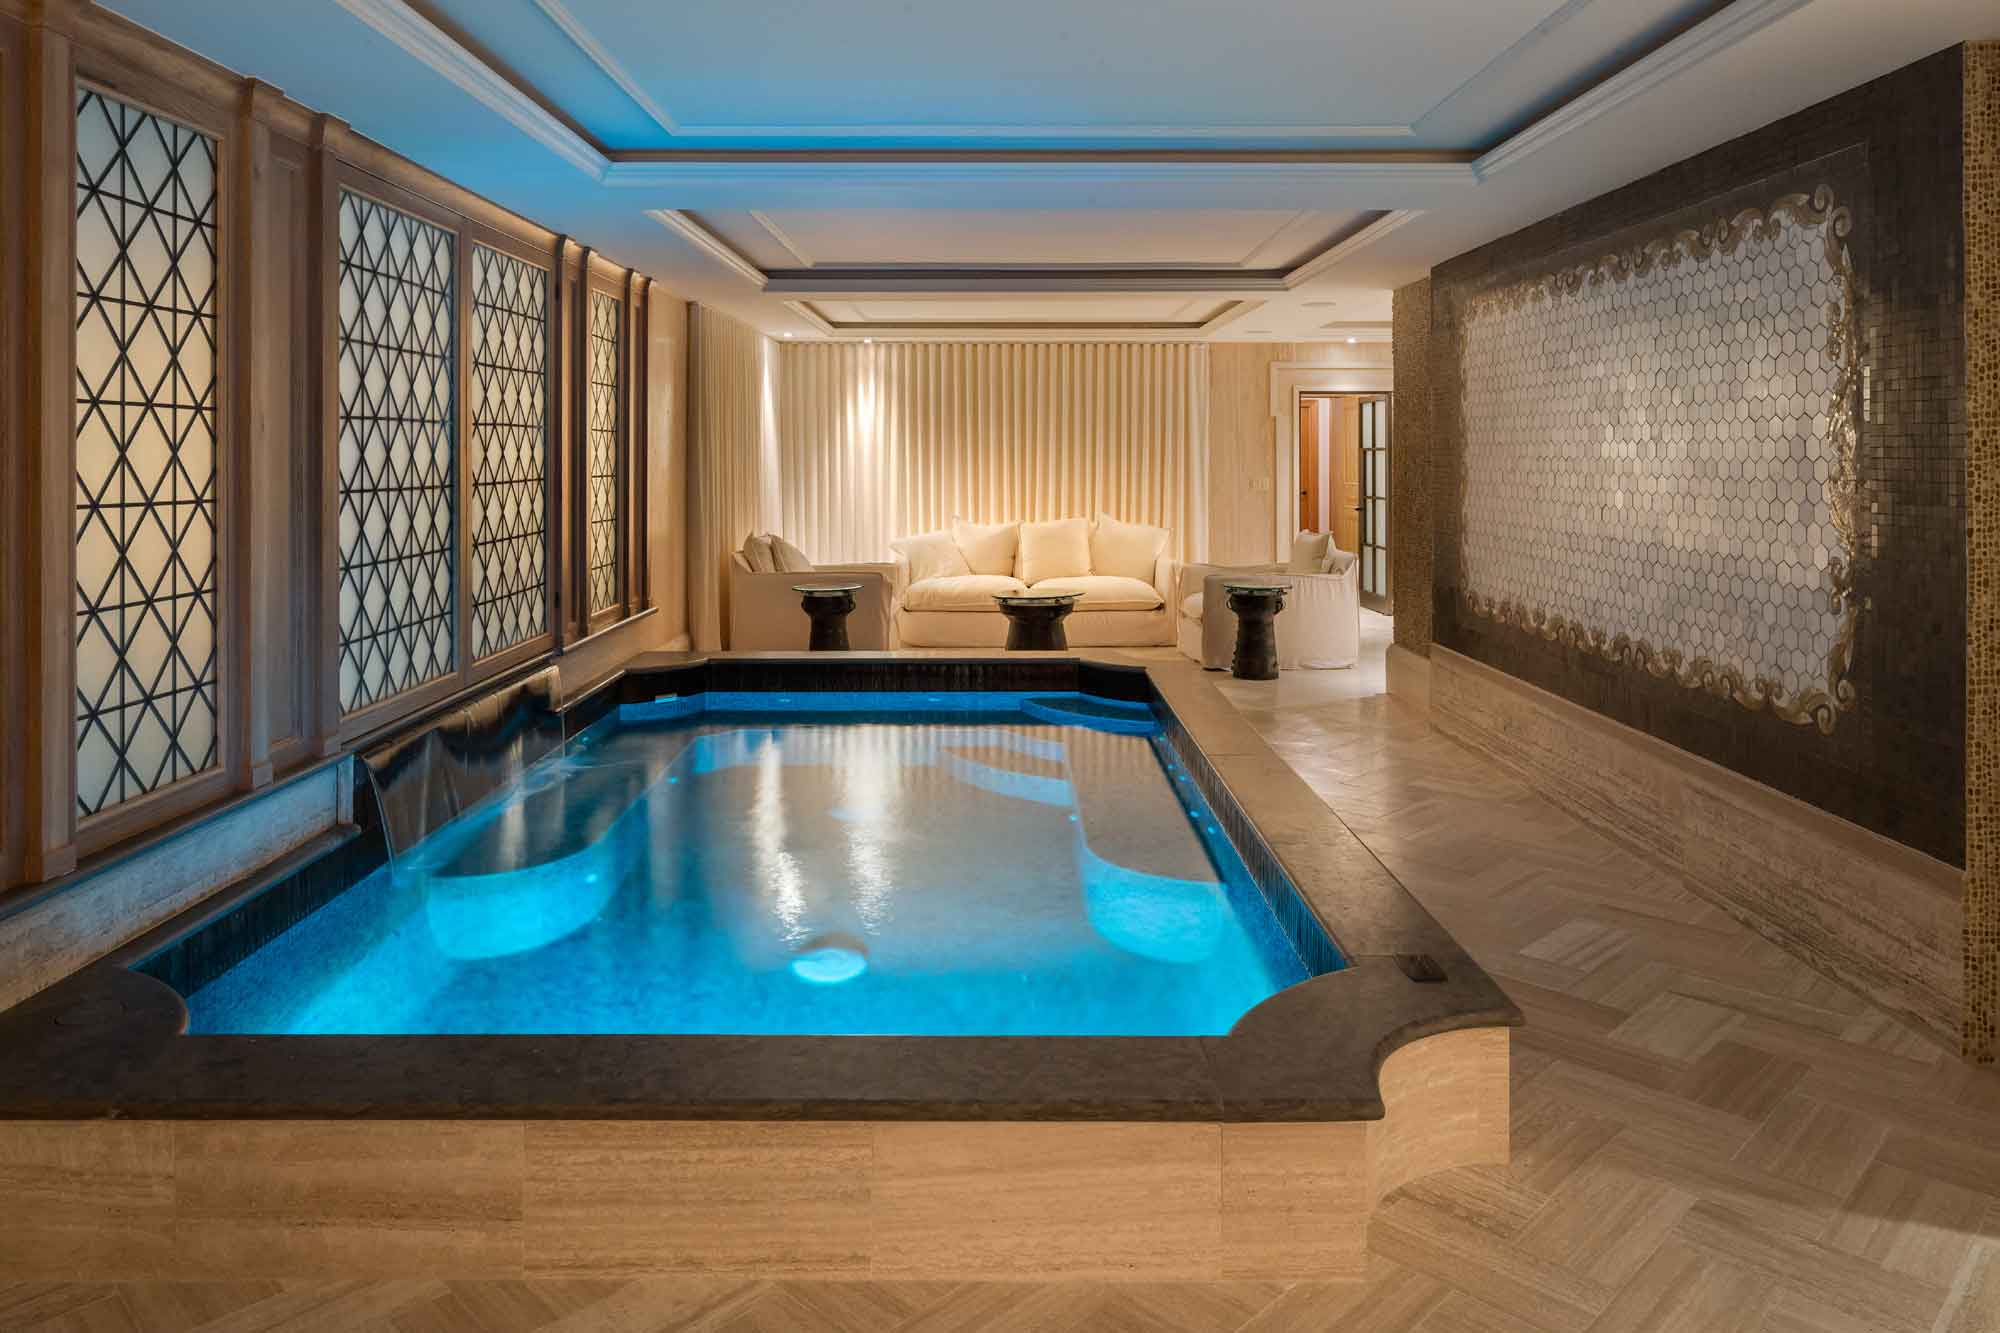 The luxury spa features a lap pool, a relaxation area, a steam room and sauna, a gym, and a massage room.